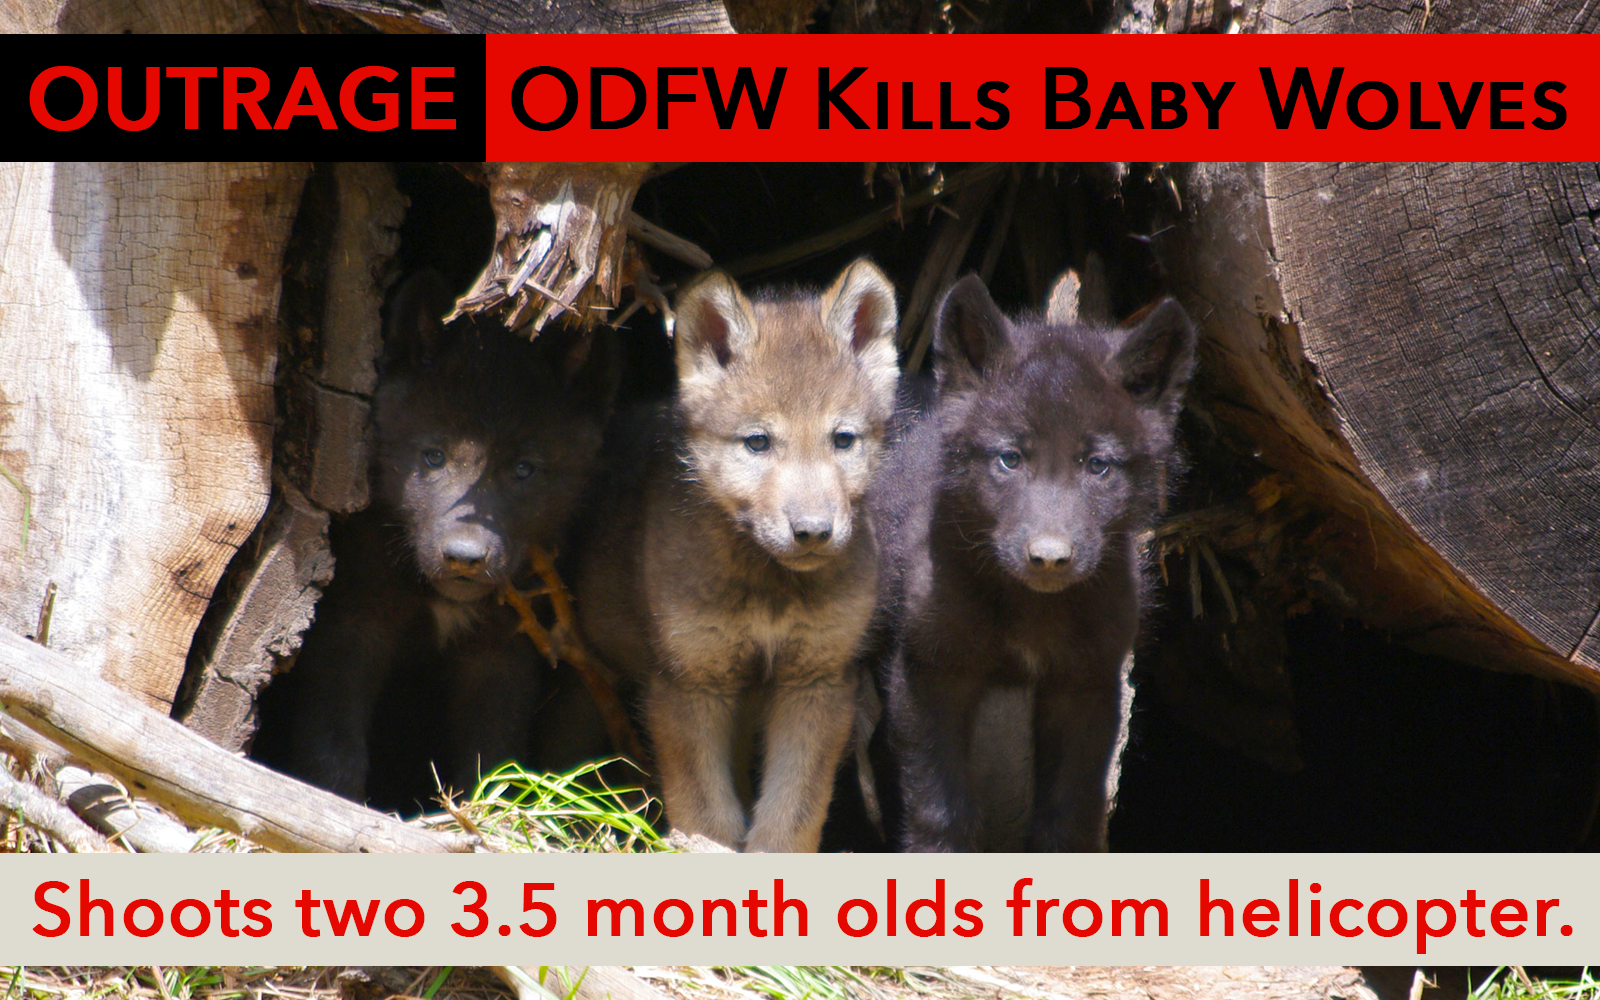 Press Release: ODFW Uses Tax Dollars to Kill 3.5 Month Old Wolf Pups